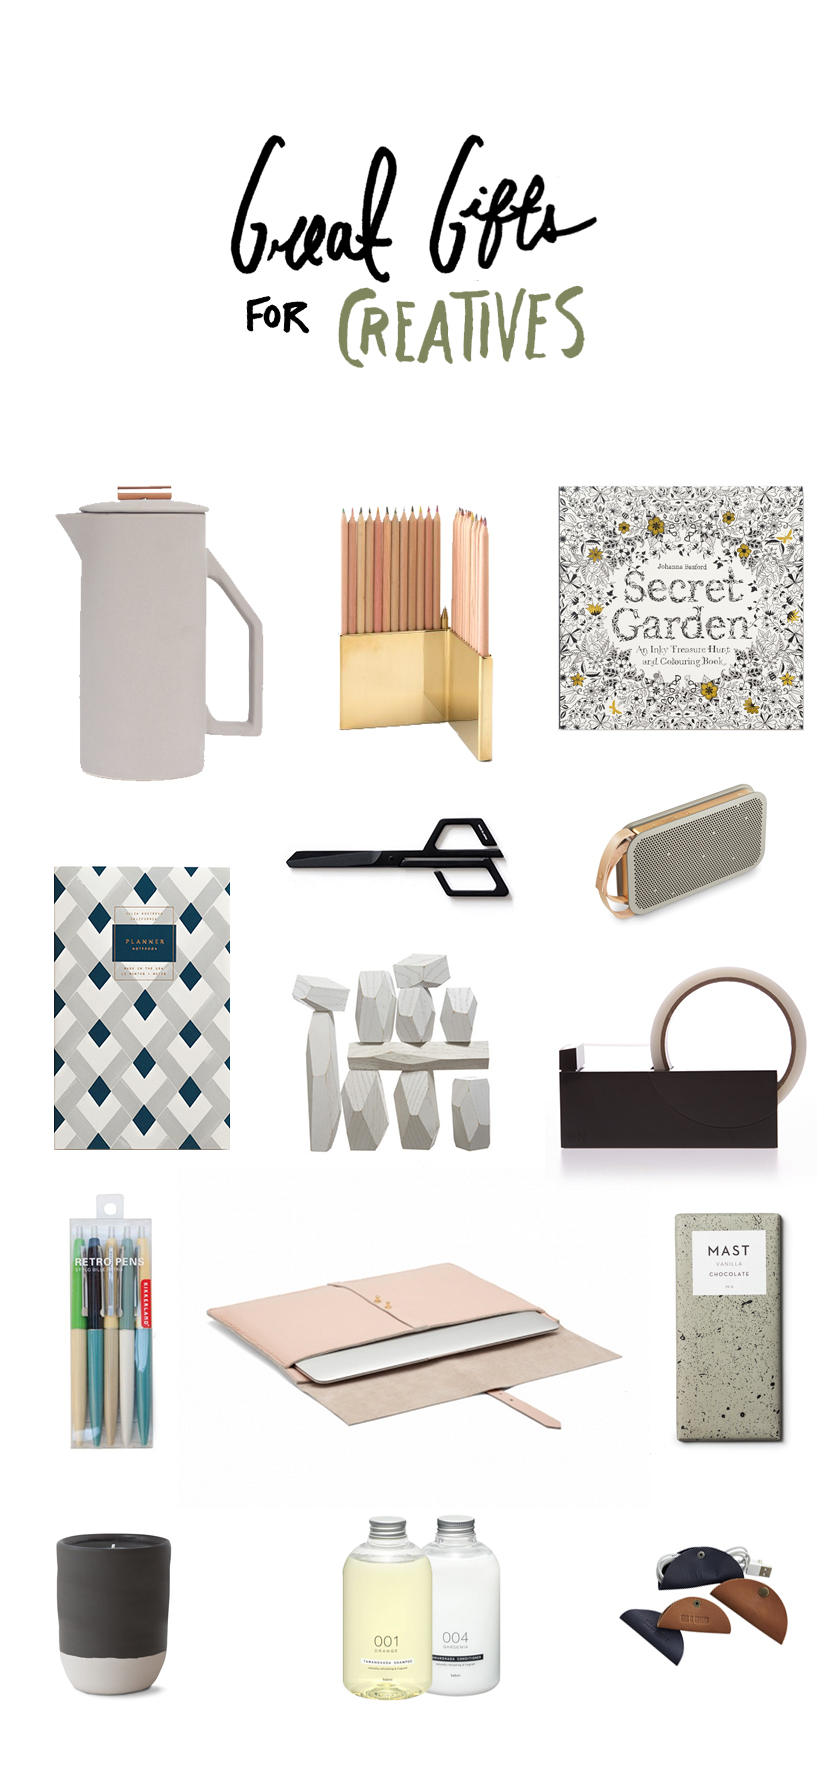 Great Gifts for Creatives | The Fresh Exchange